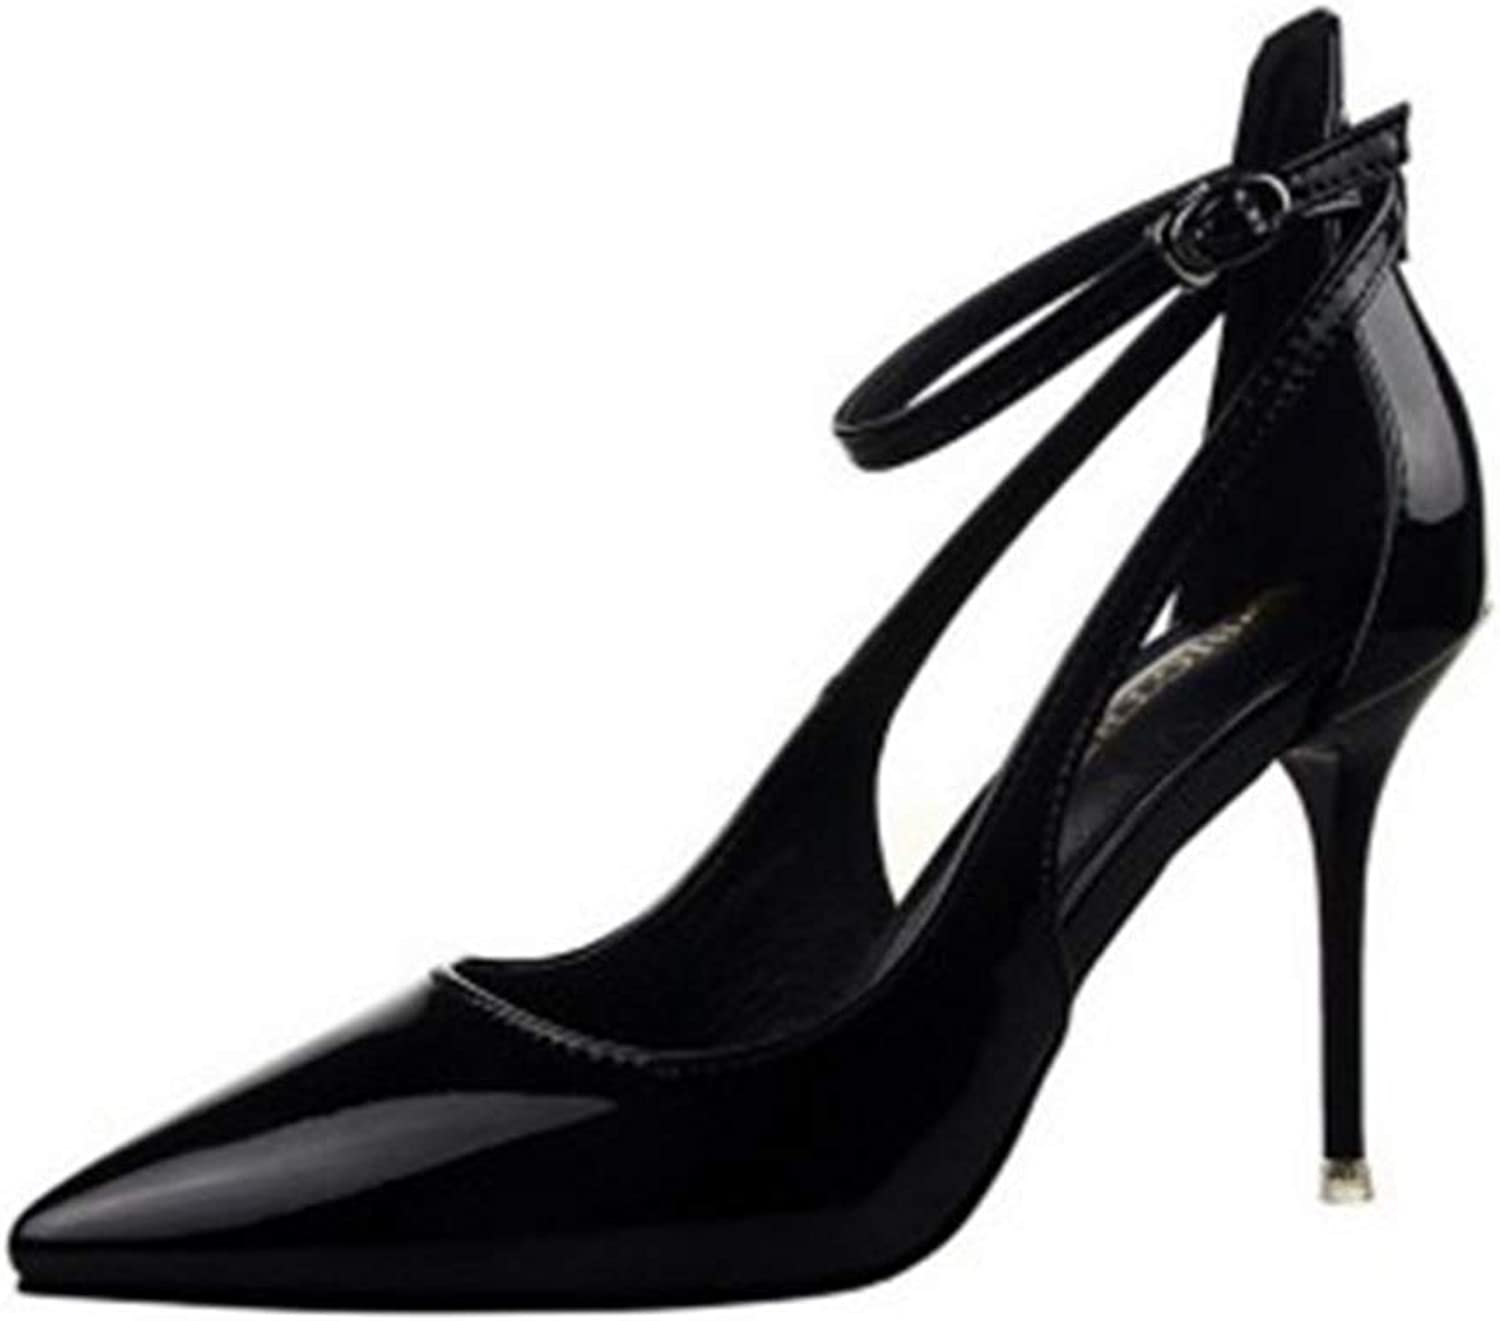 Drew Toby Women Pumps Cut-Outs Pointed Toe Patent Leather Buckle Shallow High Heels 9.5cm